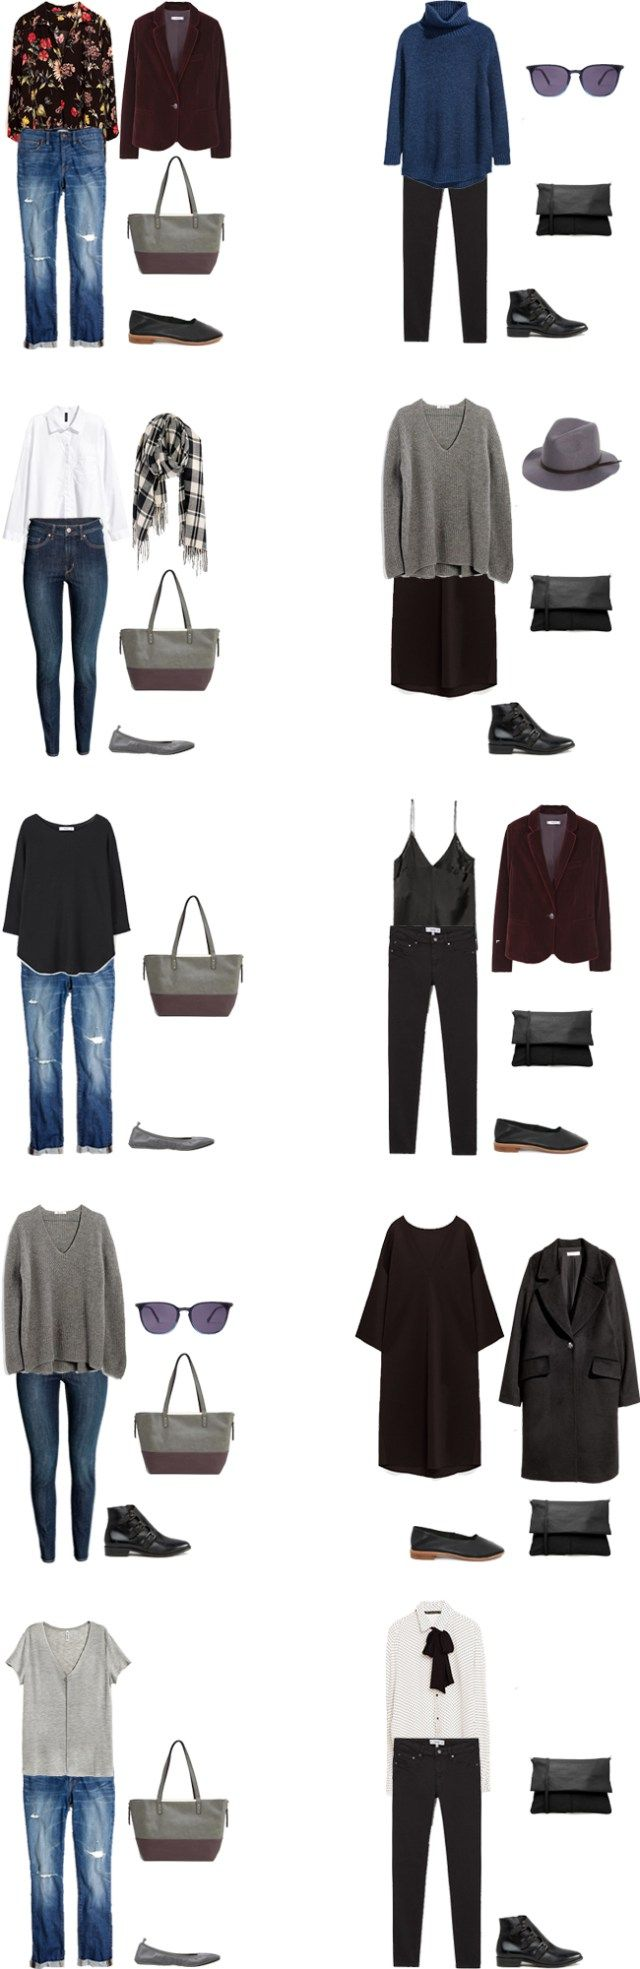 b419f787f3c What to Wear in Spain in Winter Outfit Options 1-10  packinglight   travellight